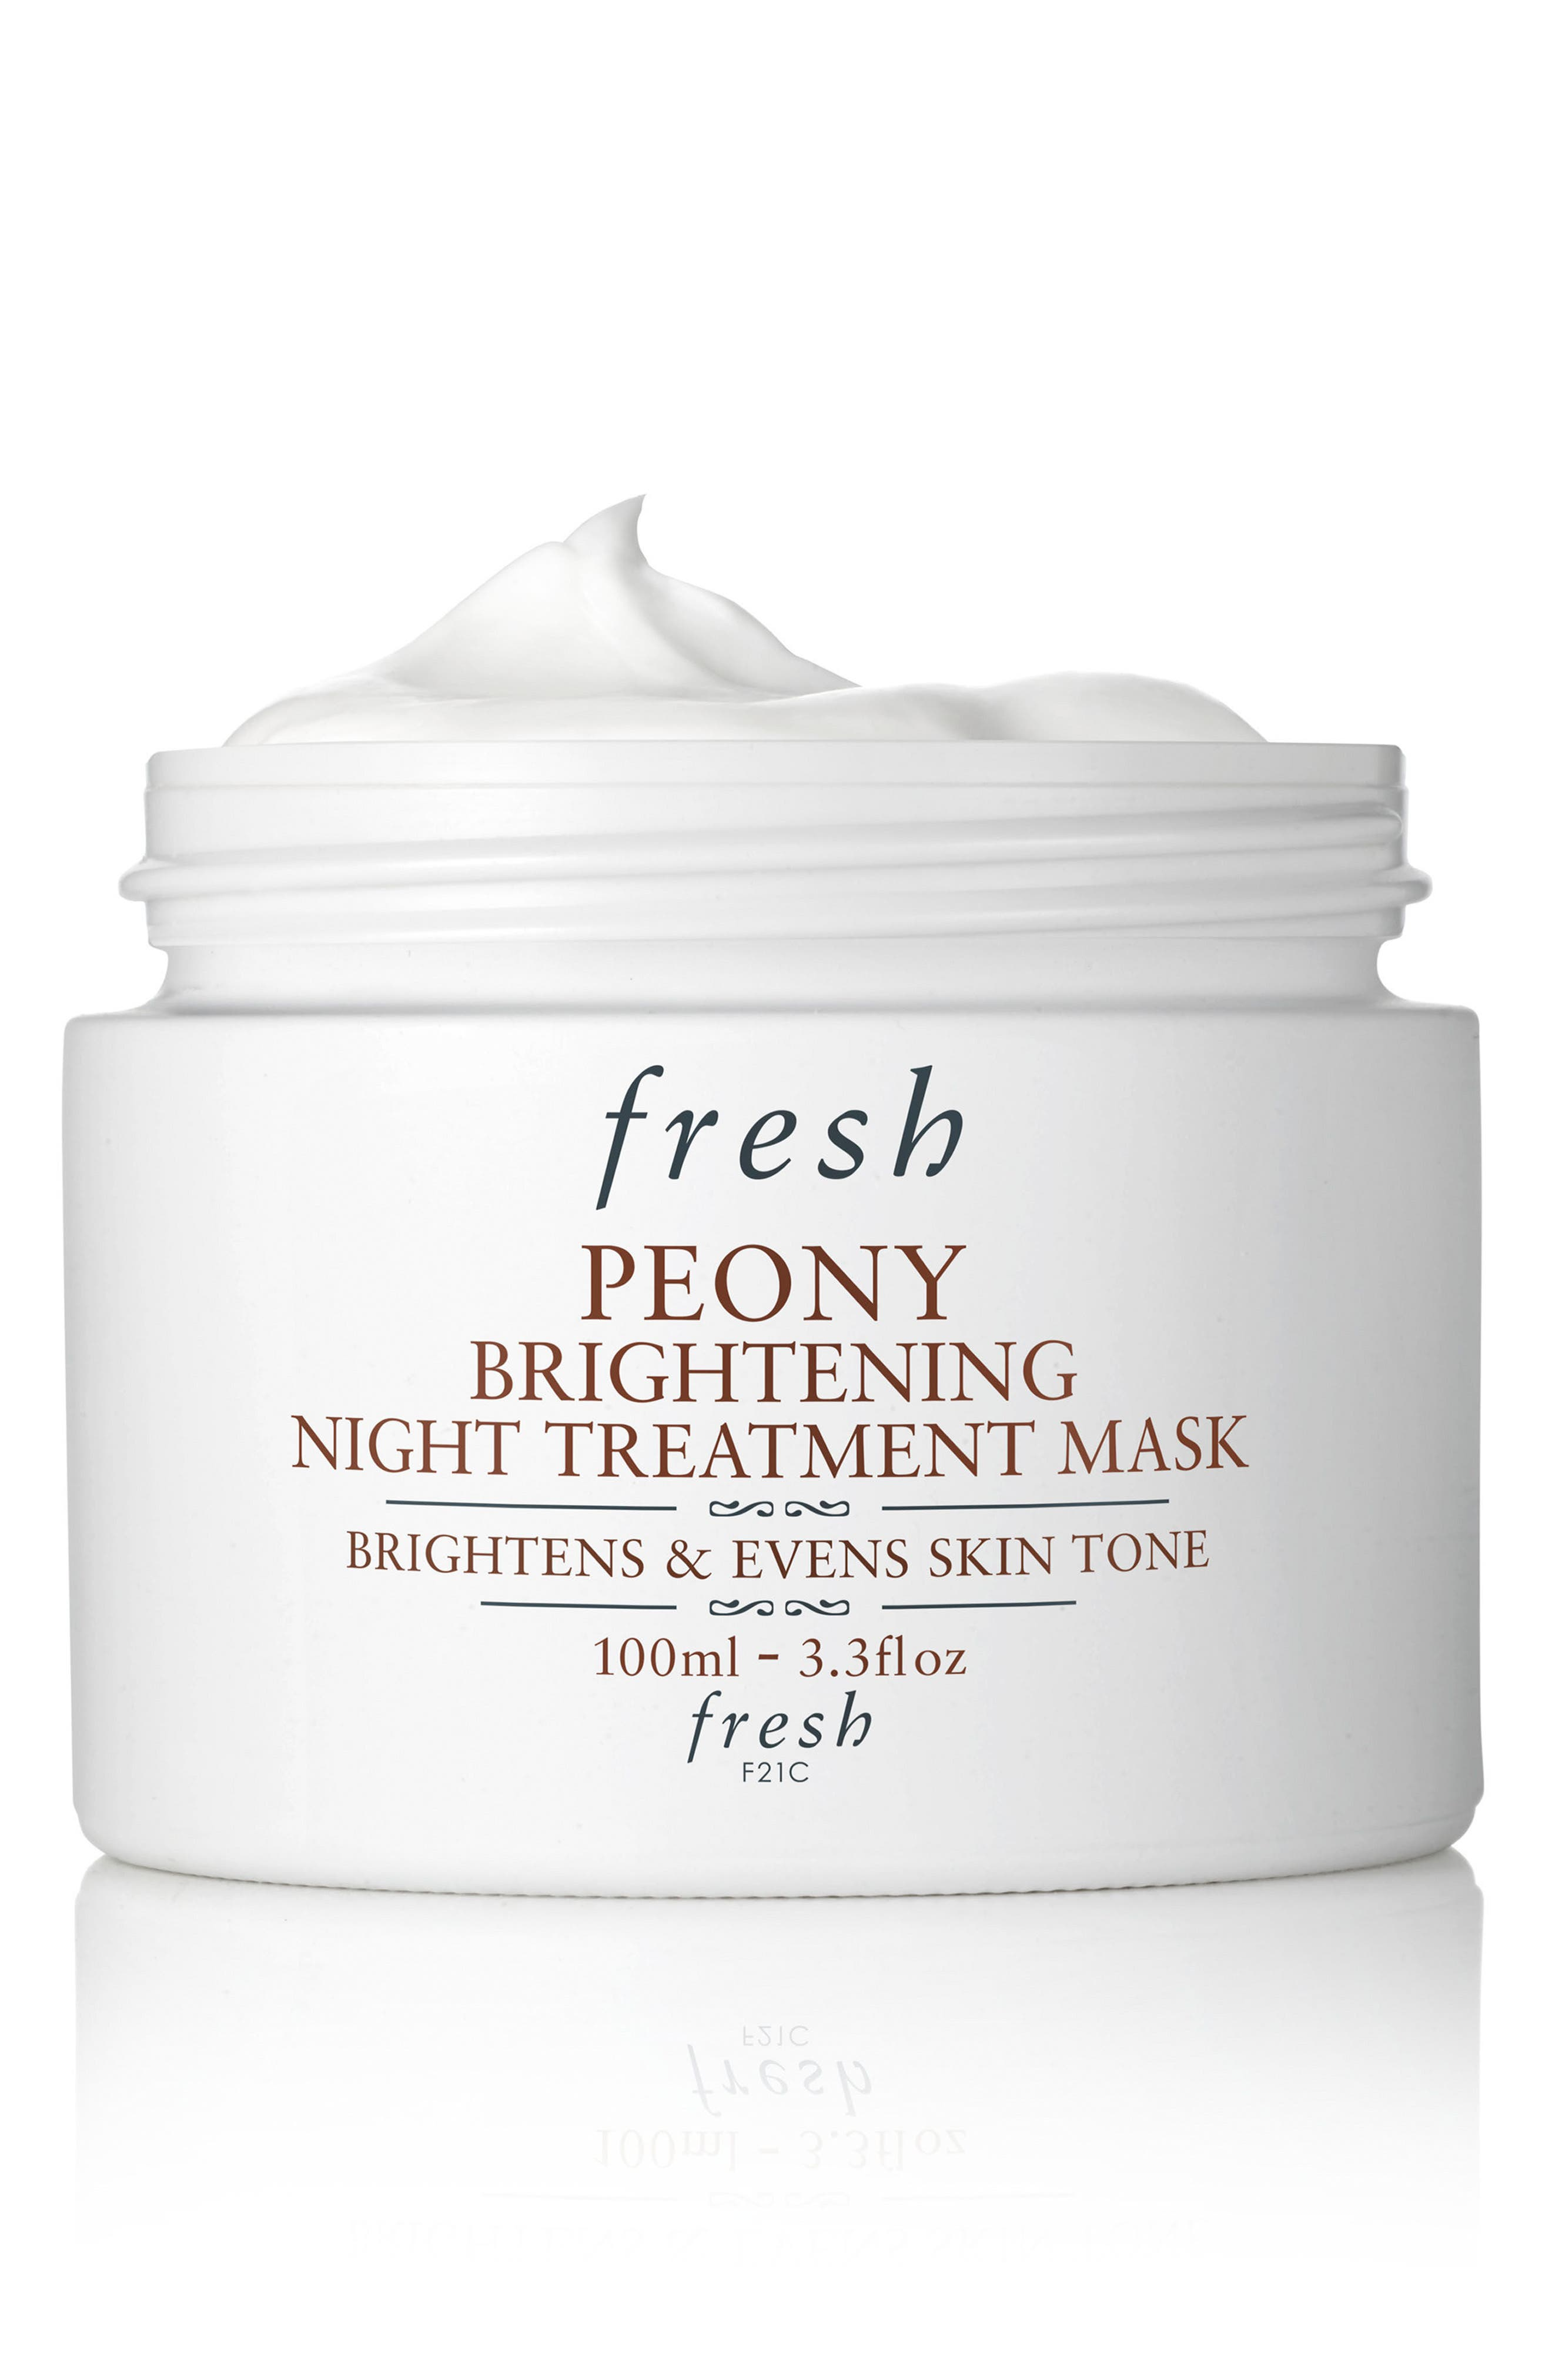 Peony Brightening Night Treatment Mask,                             Main thumbnail 1, color,                             NO COLOR